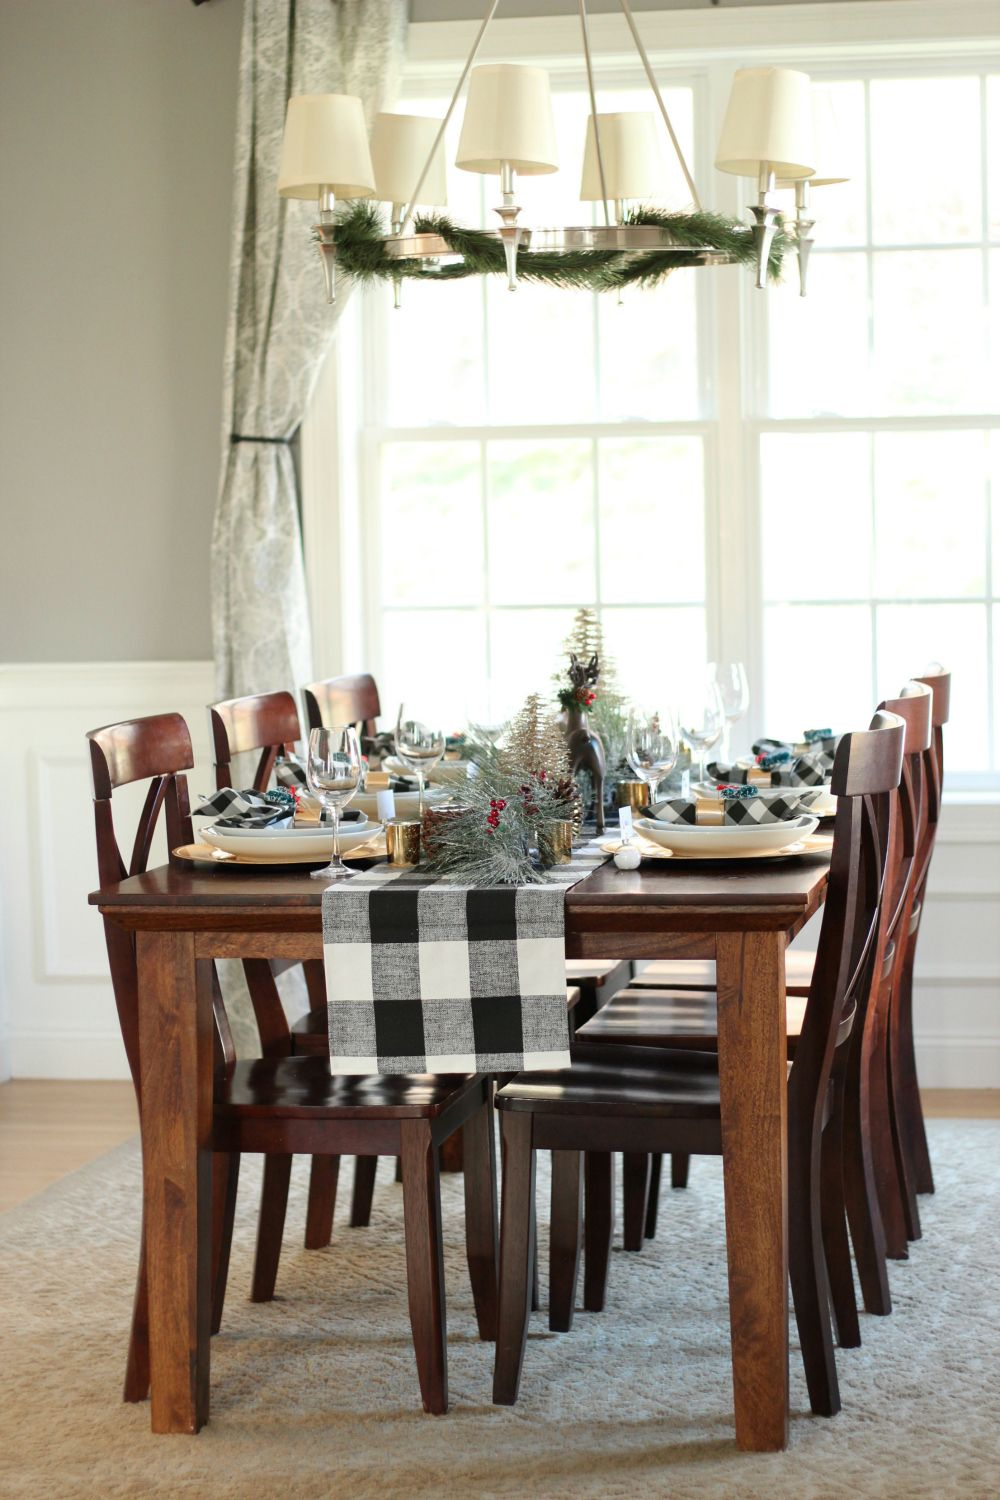 buffalo plaid table runner christmas tablescape - Christmas Plaid Table Runner